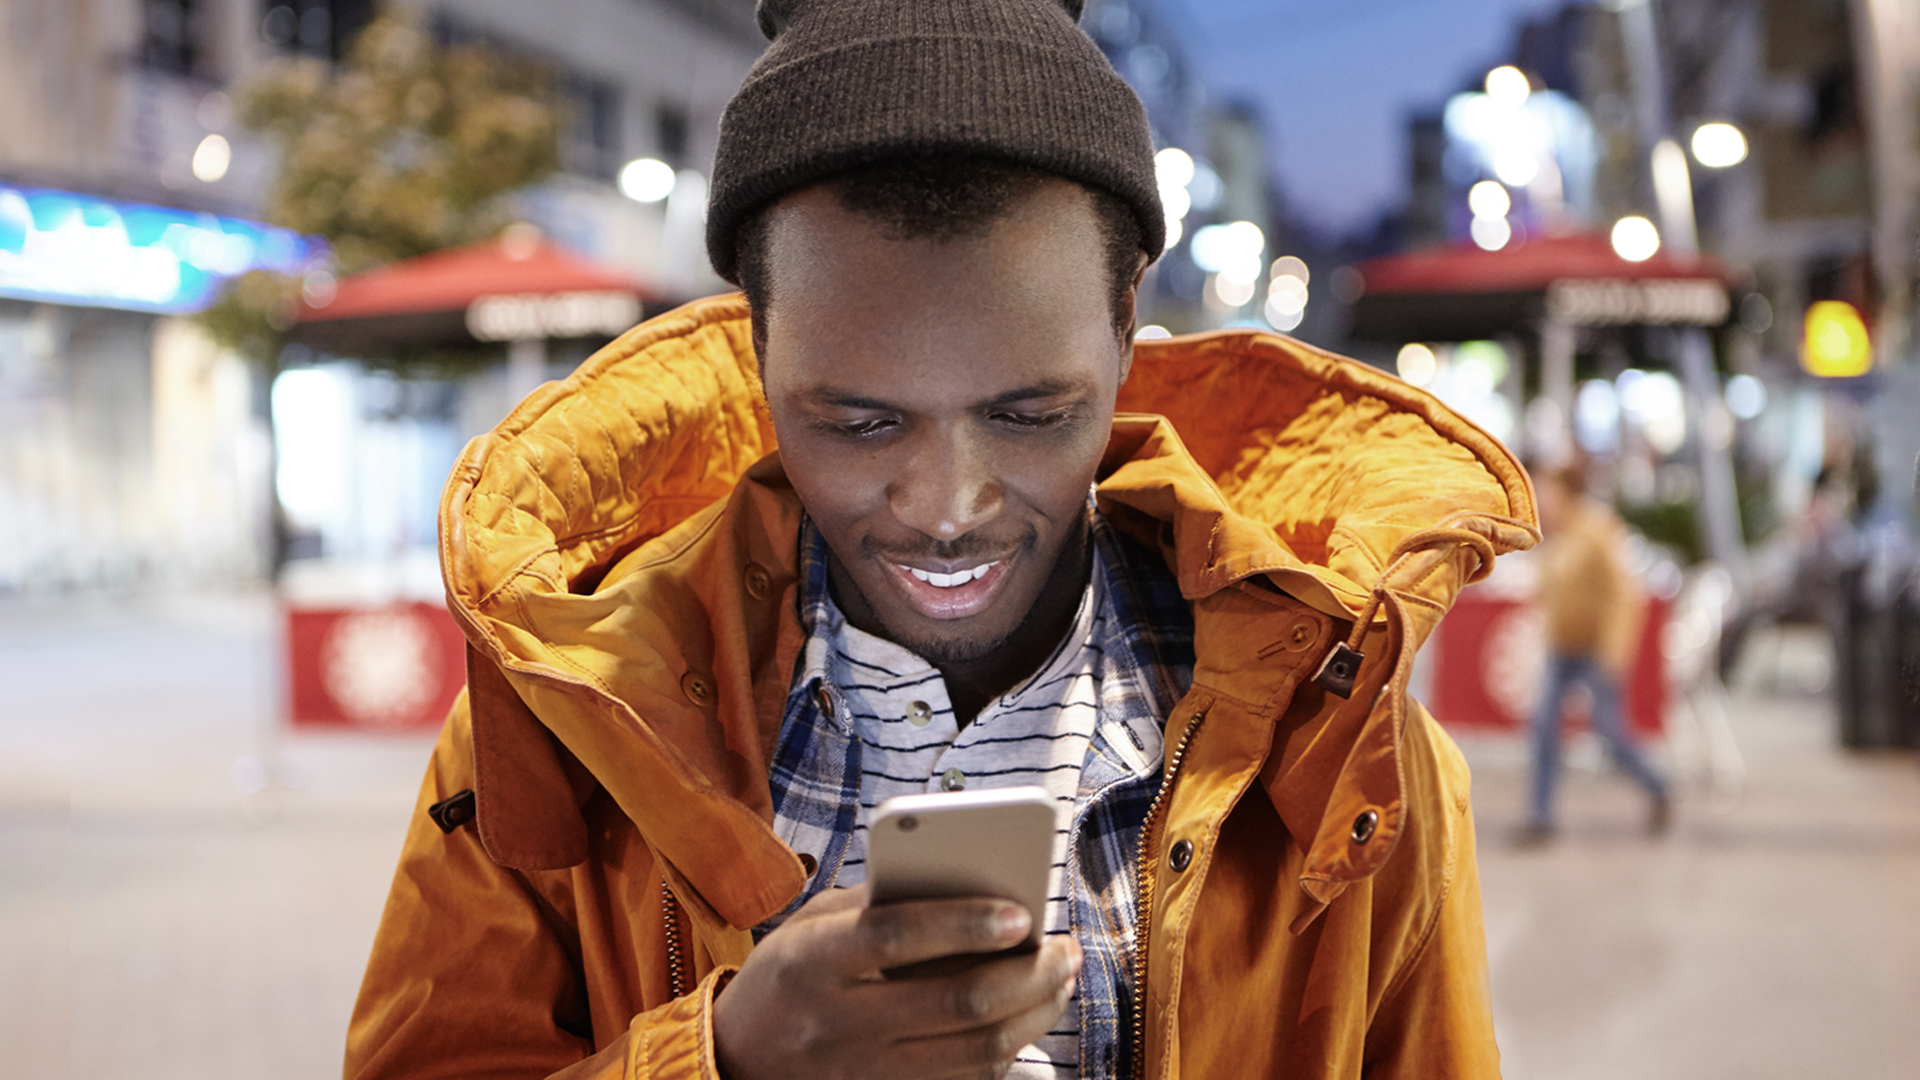 Man using a smart phone and smiling